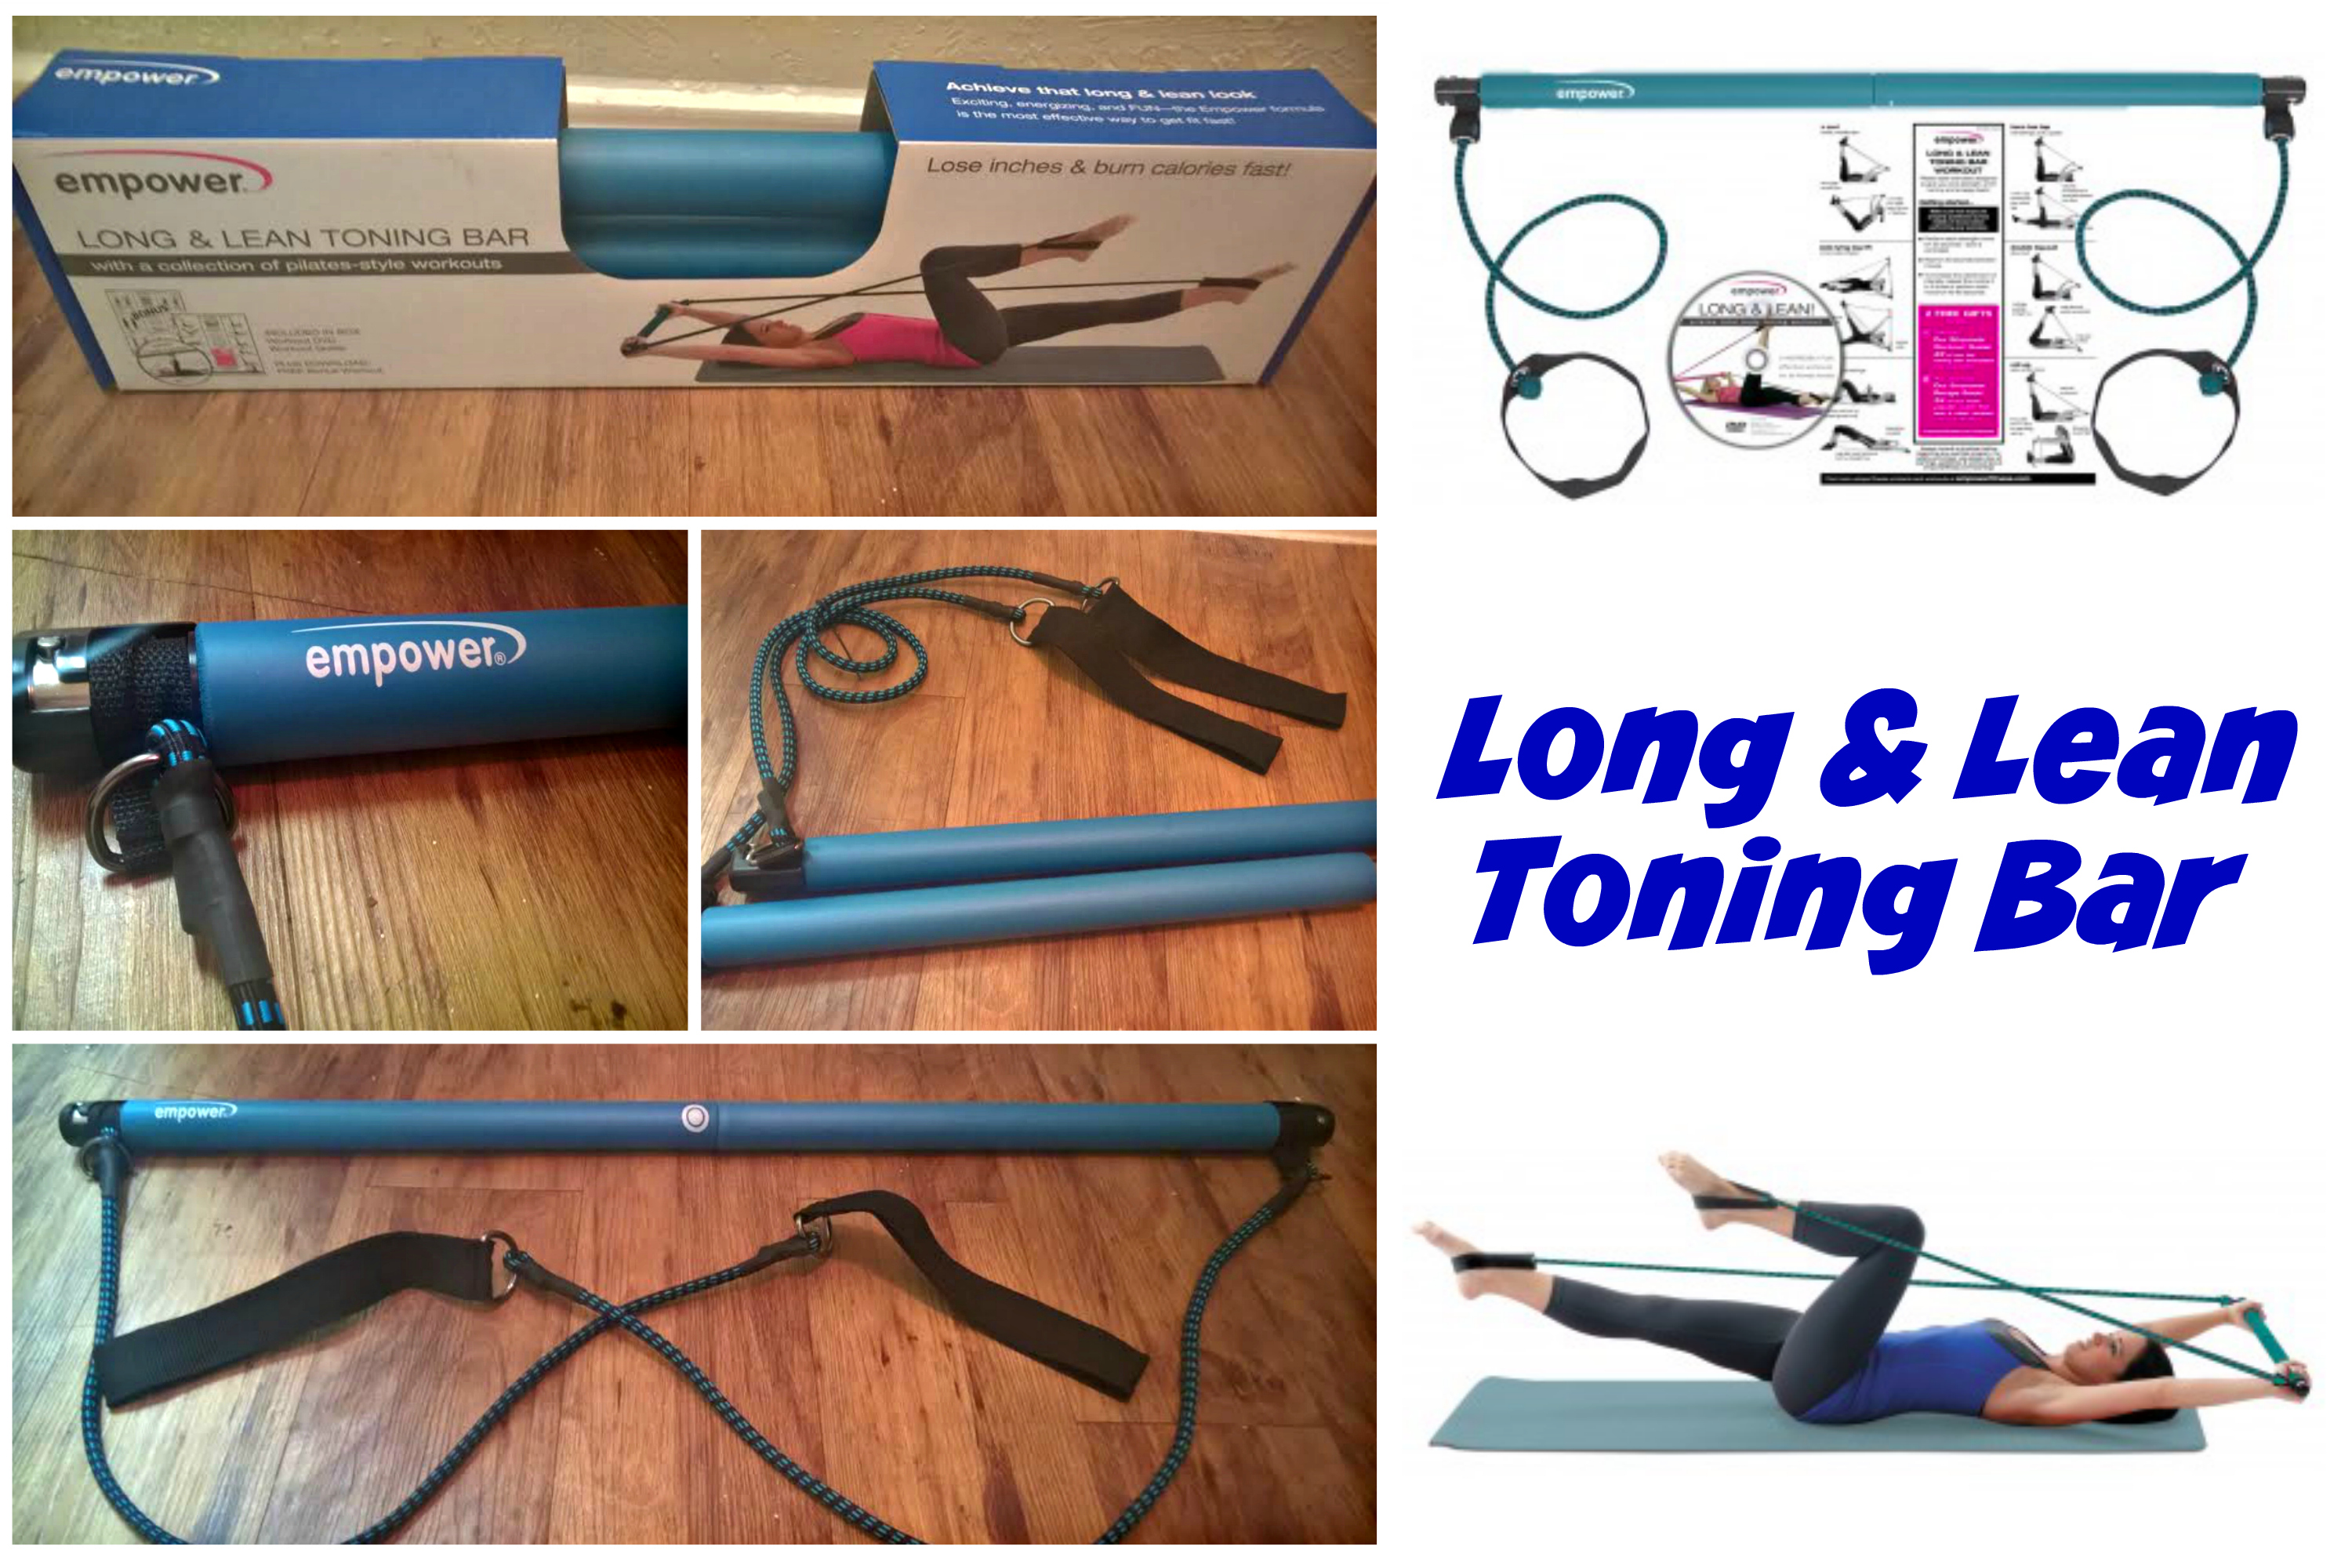 Long & Lean Toning Bar Empower Fitness